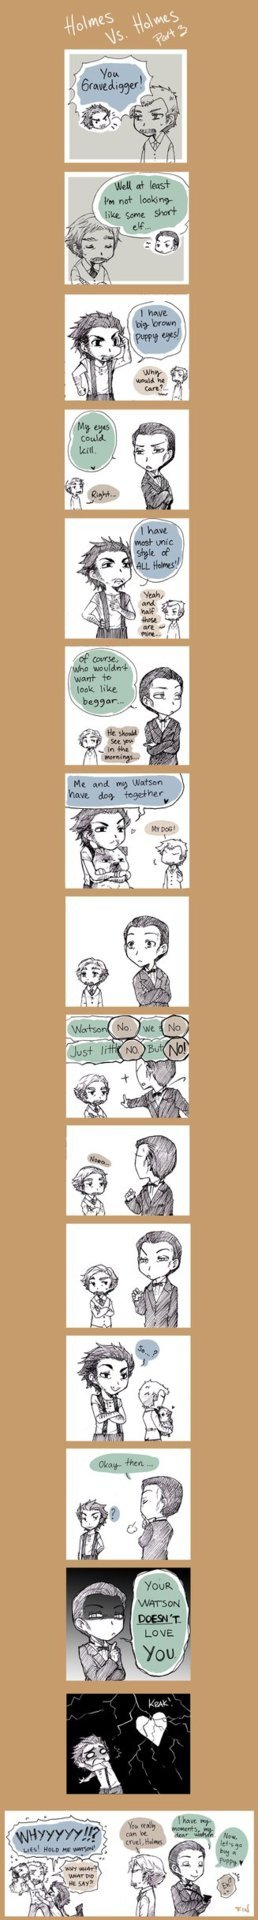 I freakin' love this comic! Brett!Holmes is so mean, and RDJ!Holmes, as usual, so adorable <3